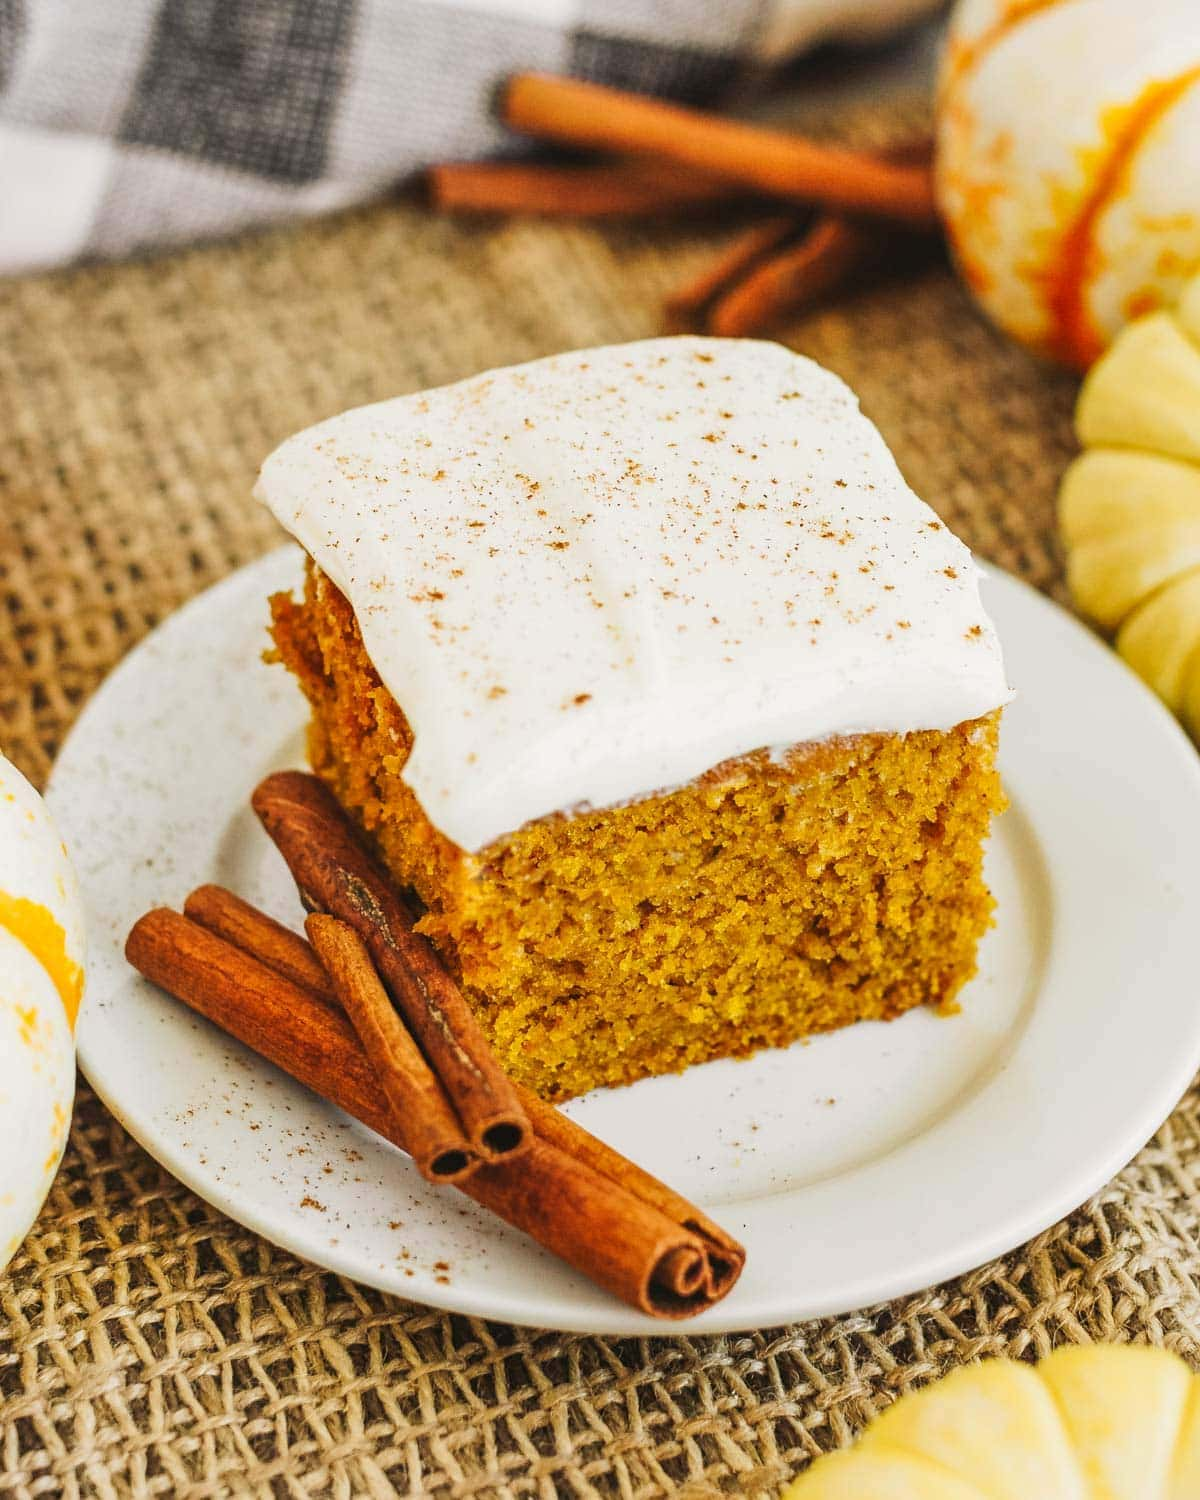 Pumpkin cake recipe slice on plate with cinnamon sticks